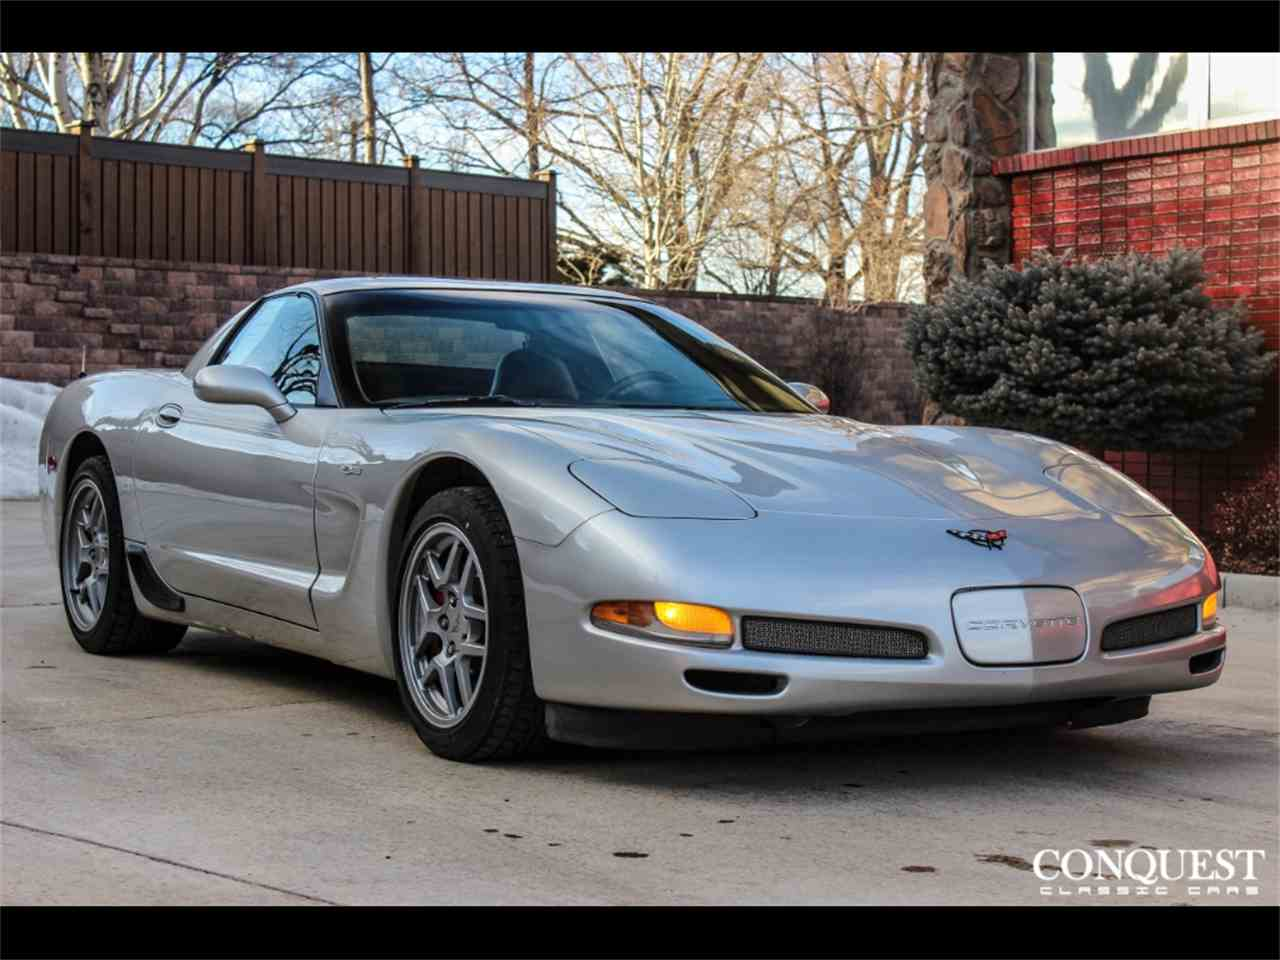 Large Picture of '04 Chevrolet Corvette - $17,777.00 Offered by Conquest Classic Cars - LWBY